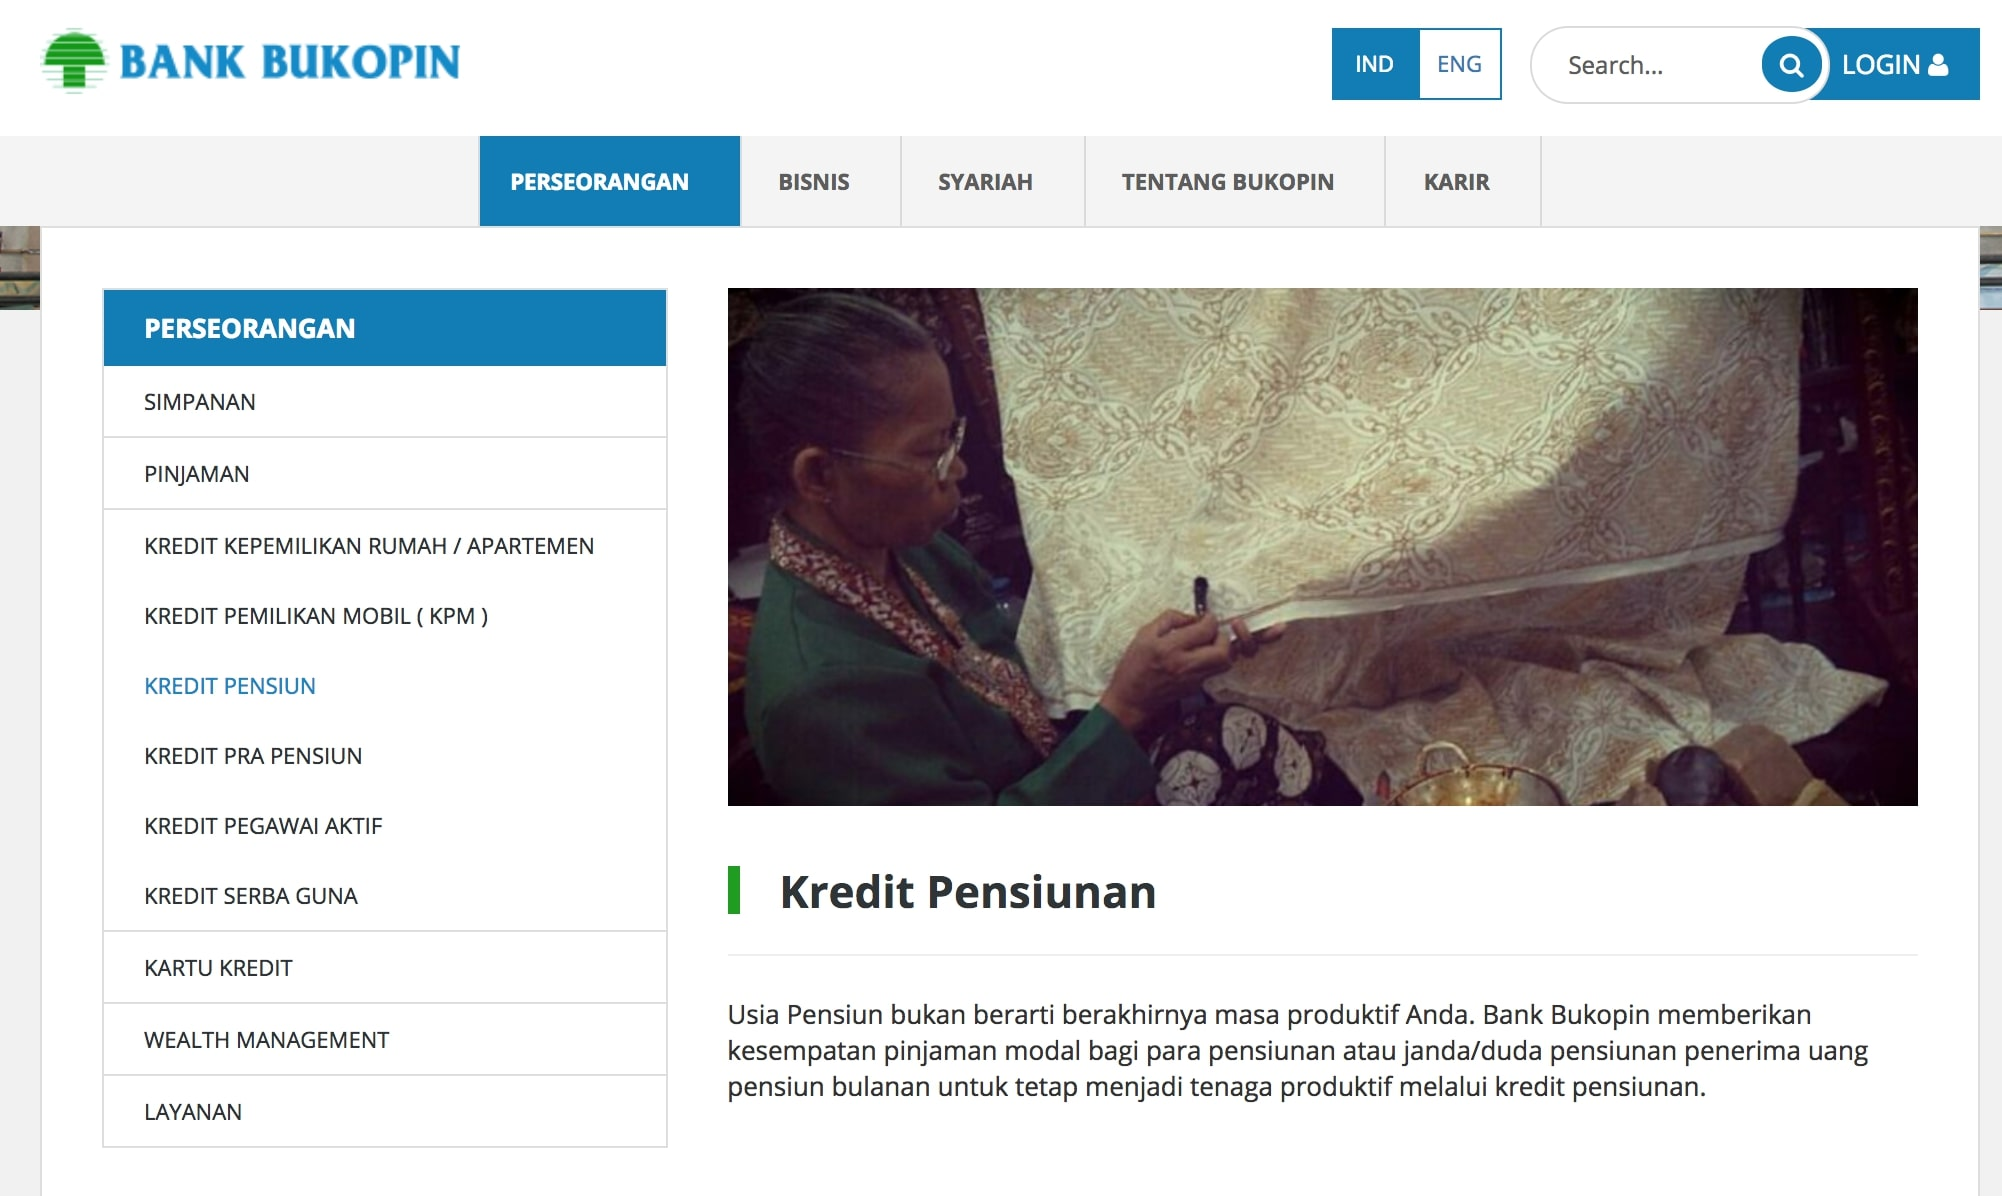 Kredit pensiunan Bank Bukopin. (Bukopin.co.id)